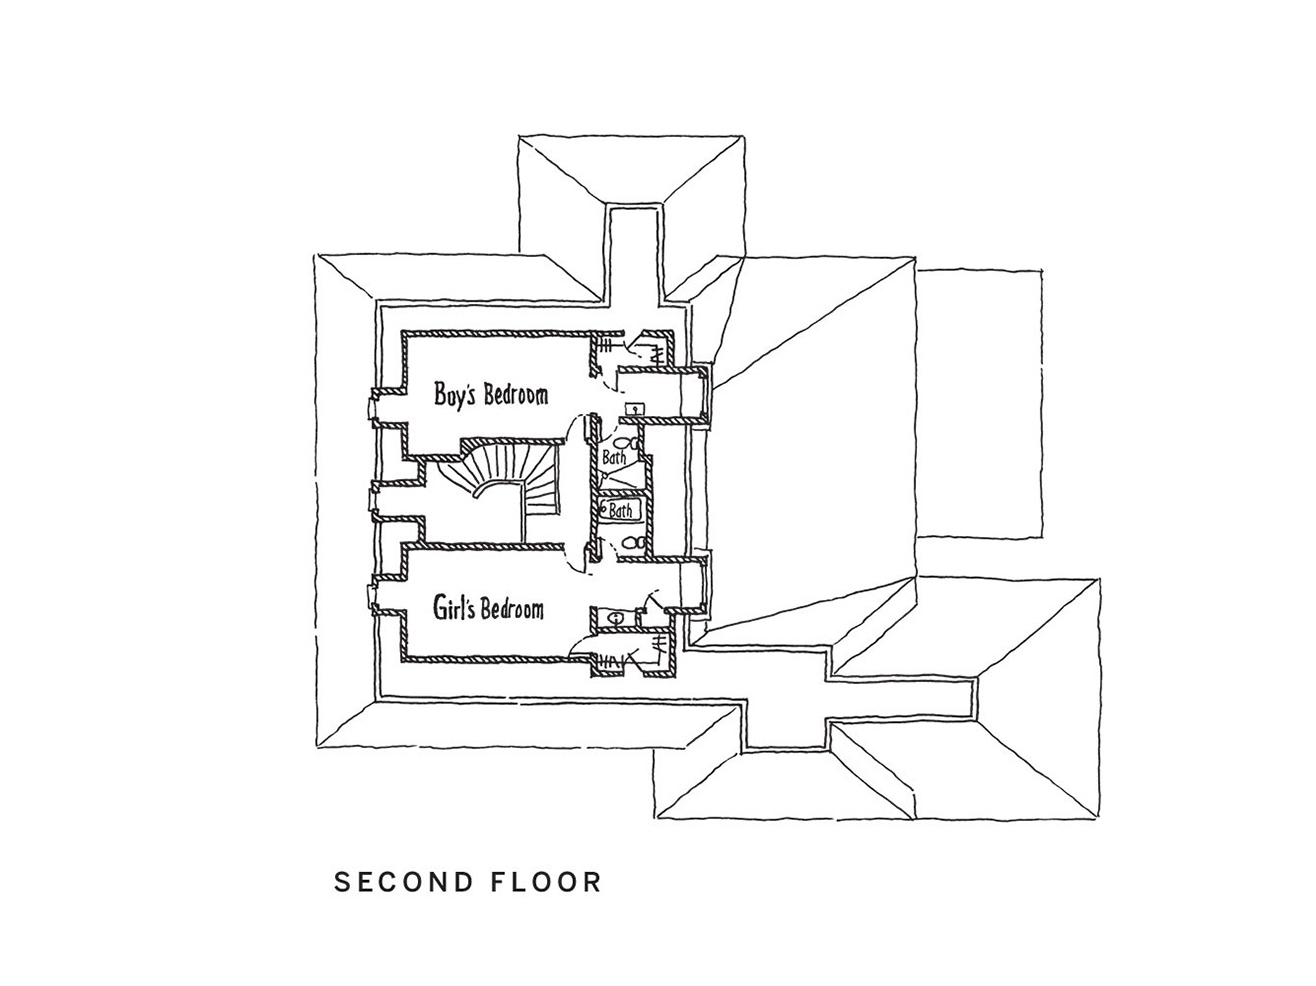 2018 Idea House Second Floor Plan